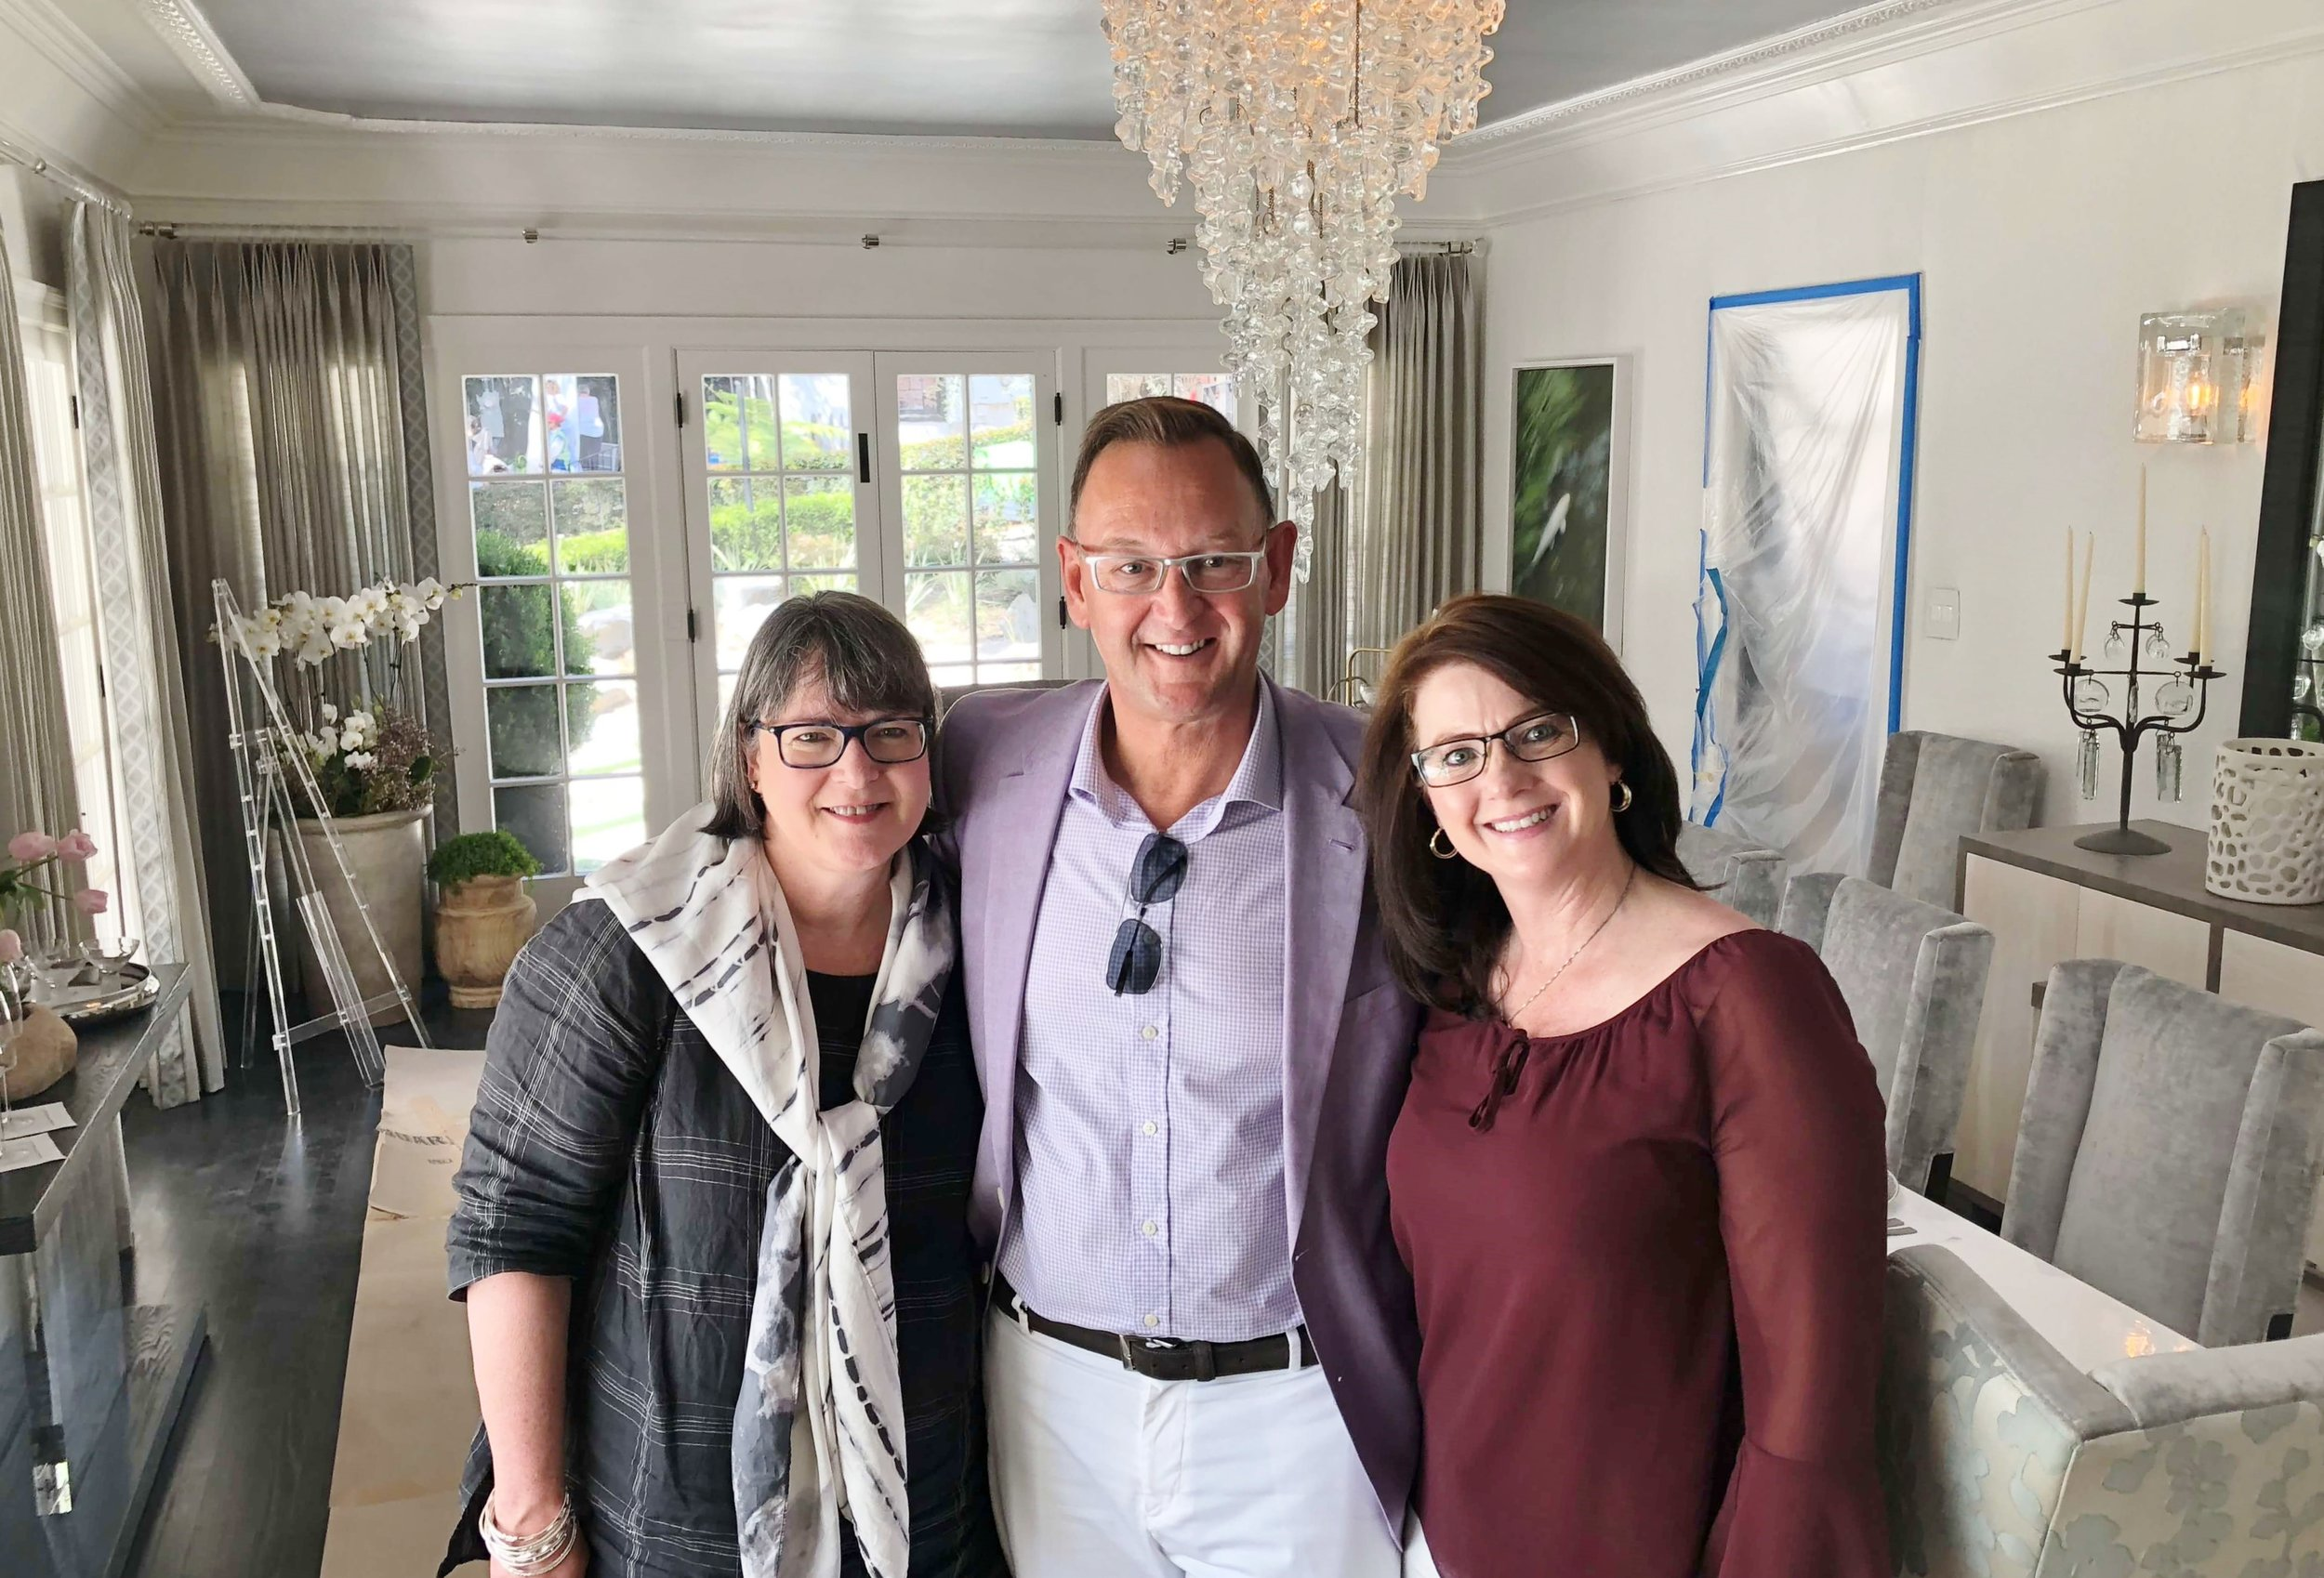 Beautiful dining room by Elizabeth Lamont. So fun to run into design friends, Jeffrey Johnson and Michelle Blemel on this press tour. #pasadenashowcasehouse